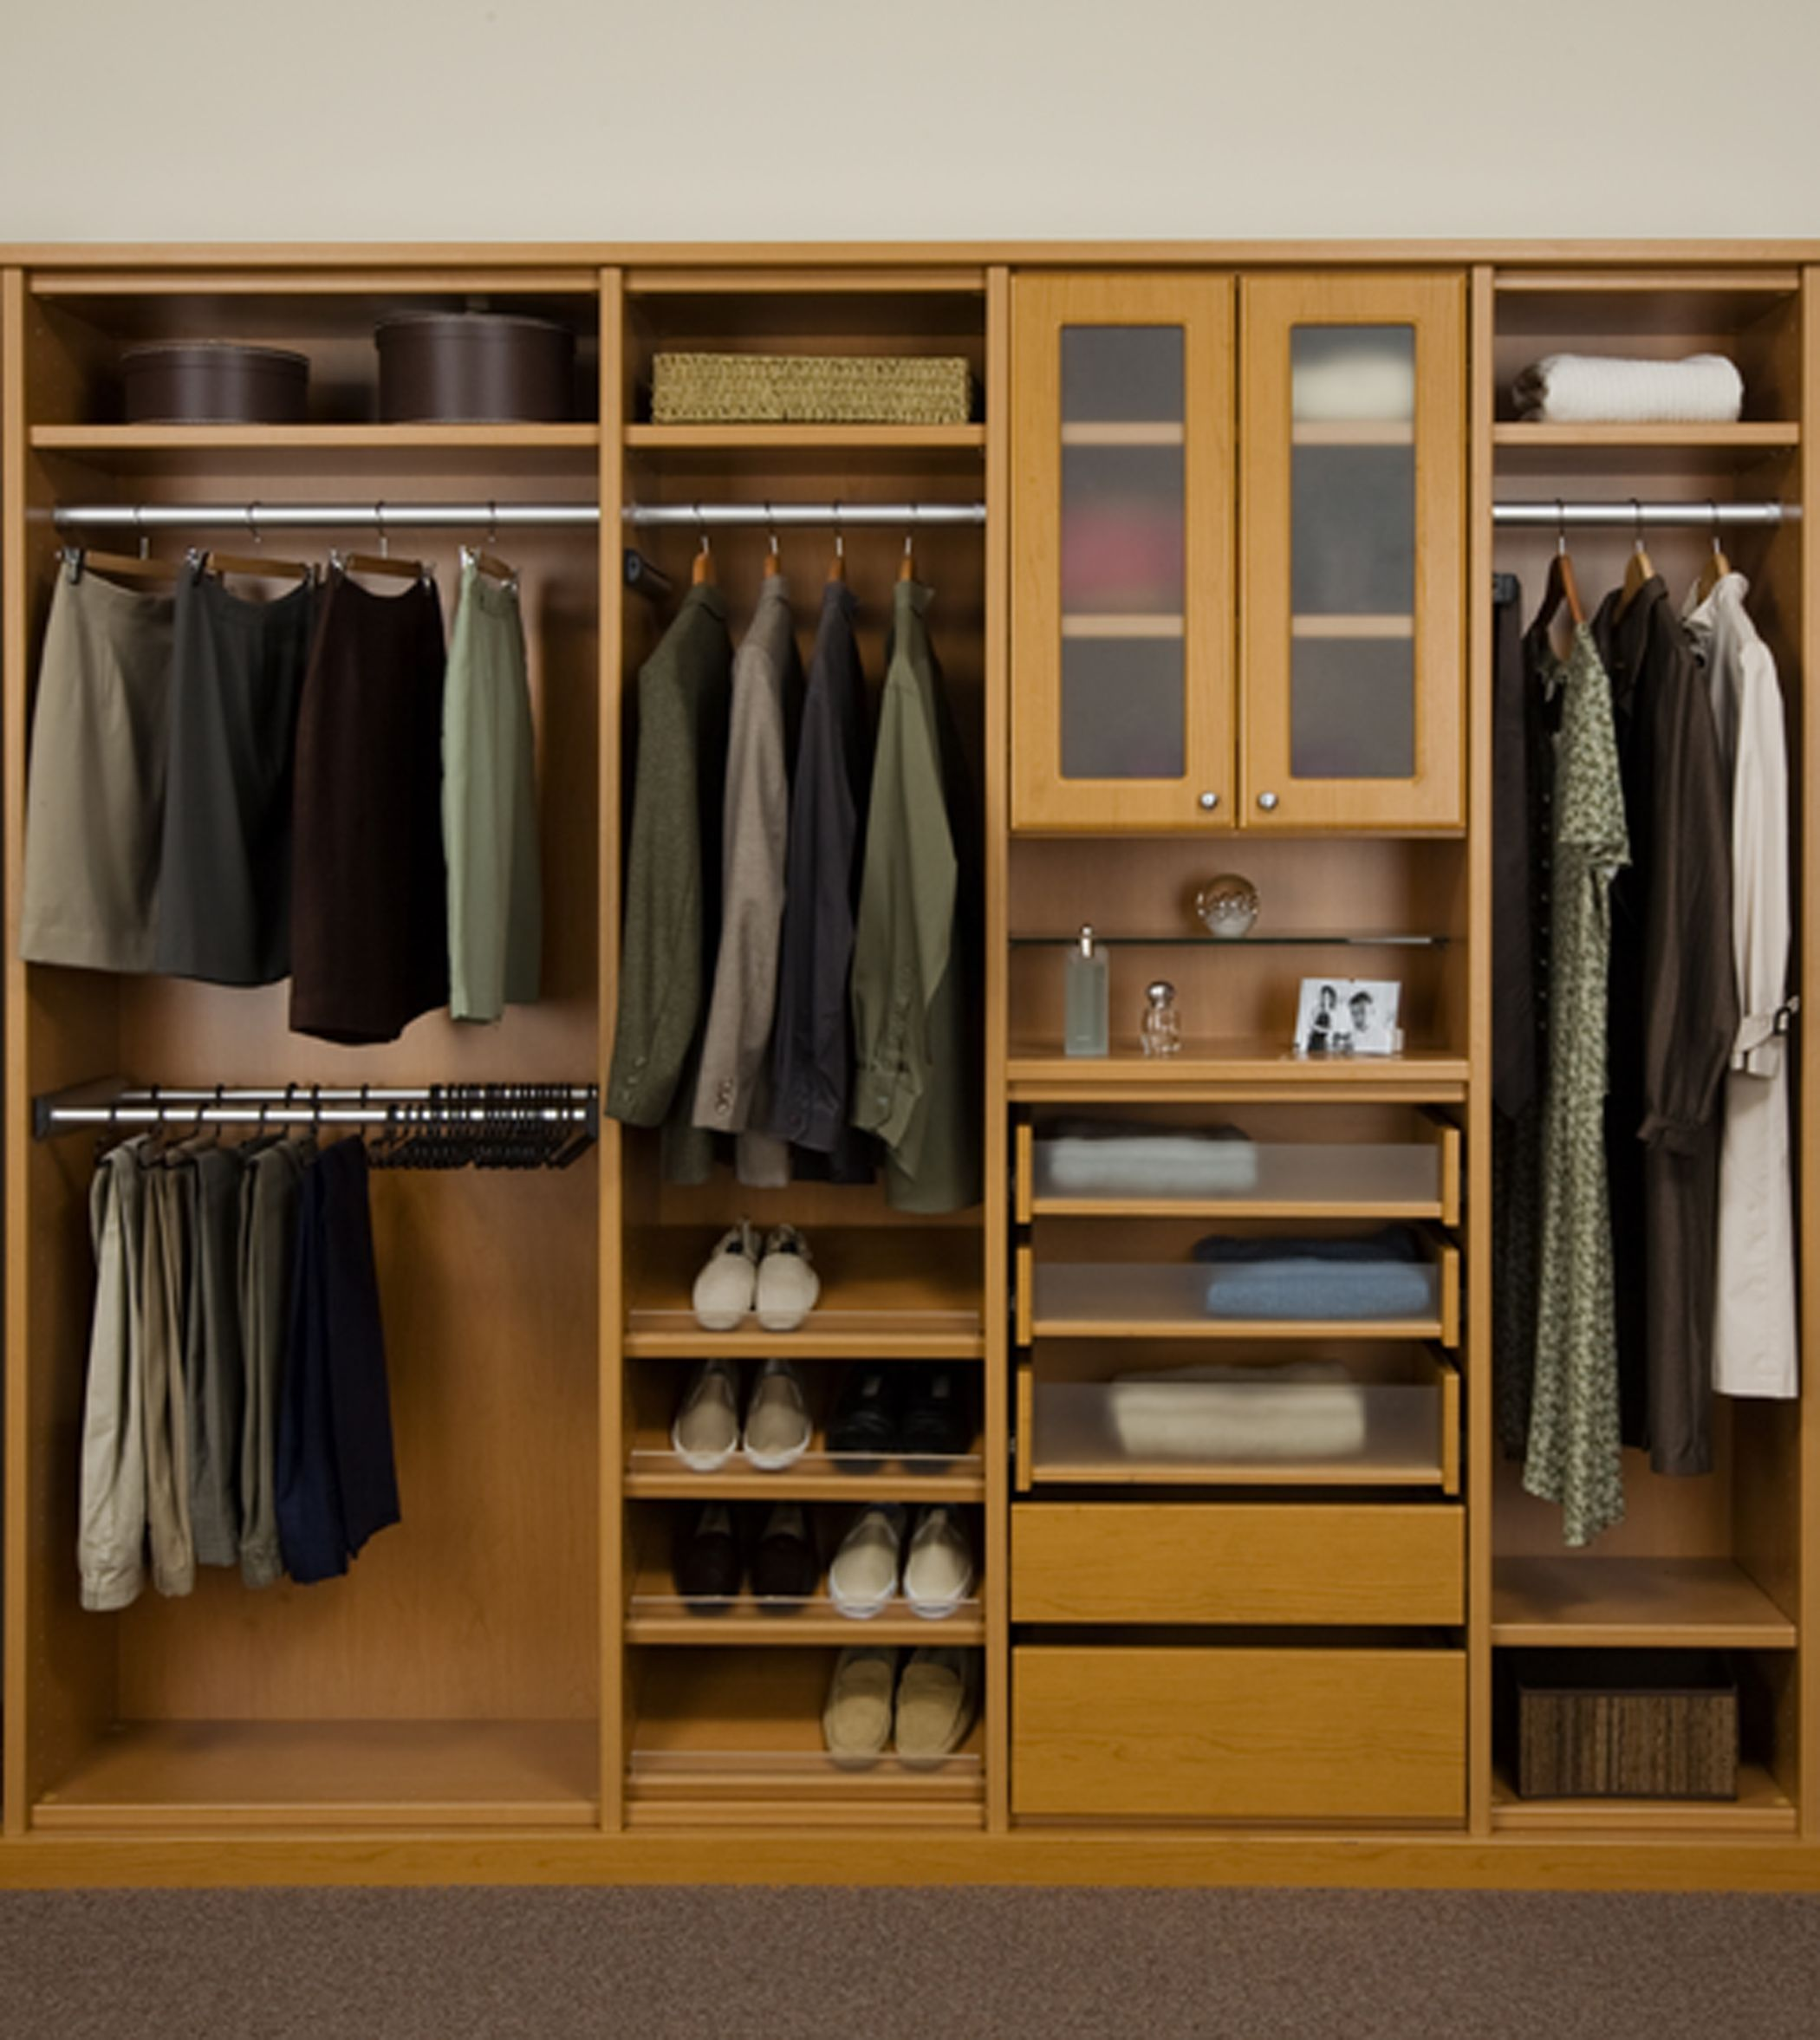 pictures of closets designs closet design lowes closet design ideas - Closet Design For Small Closets